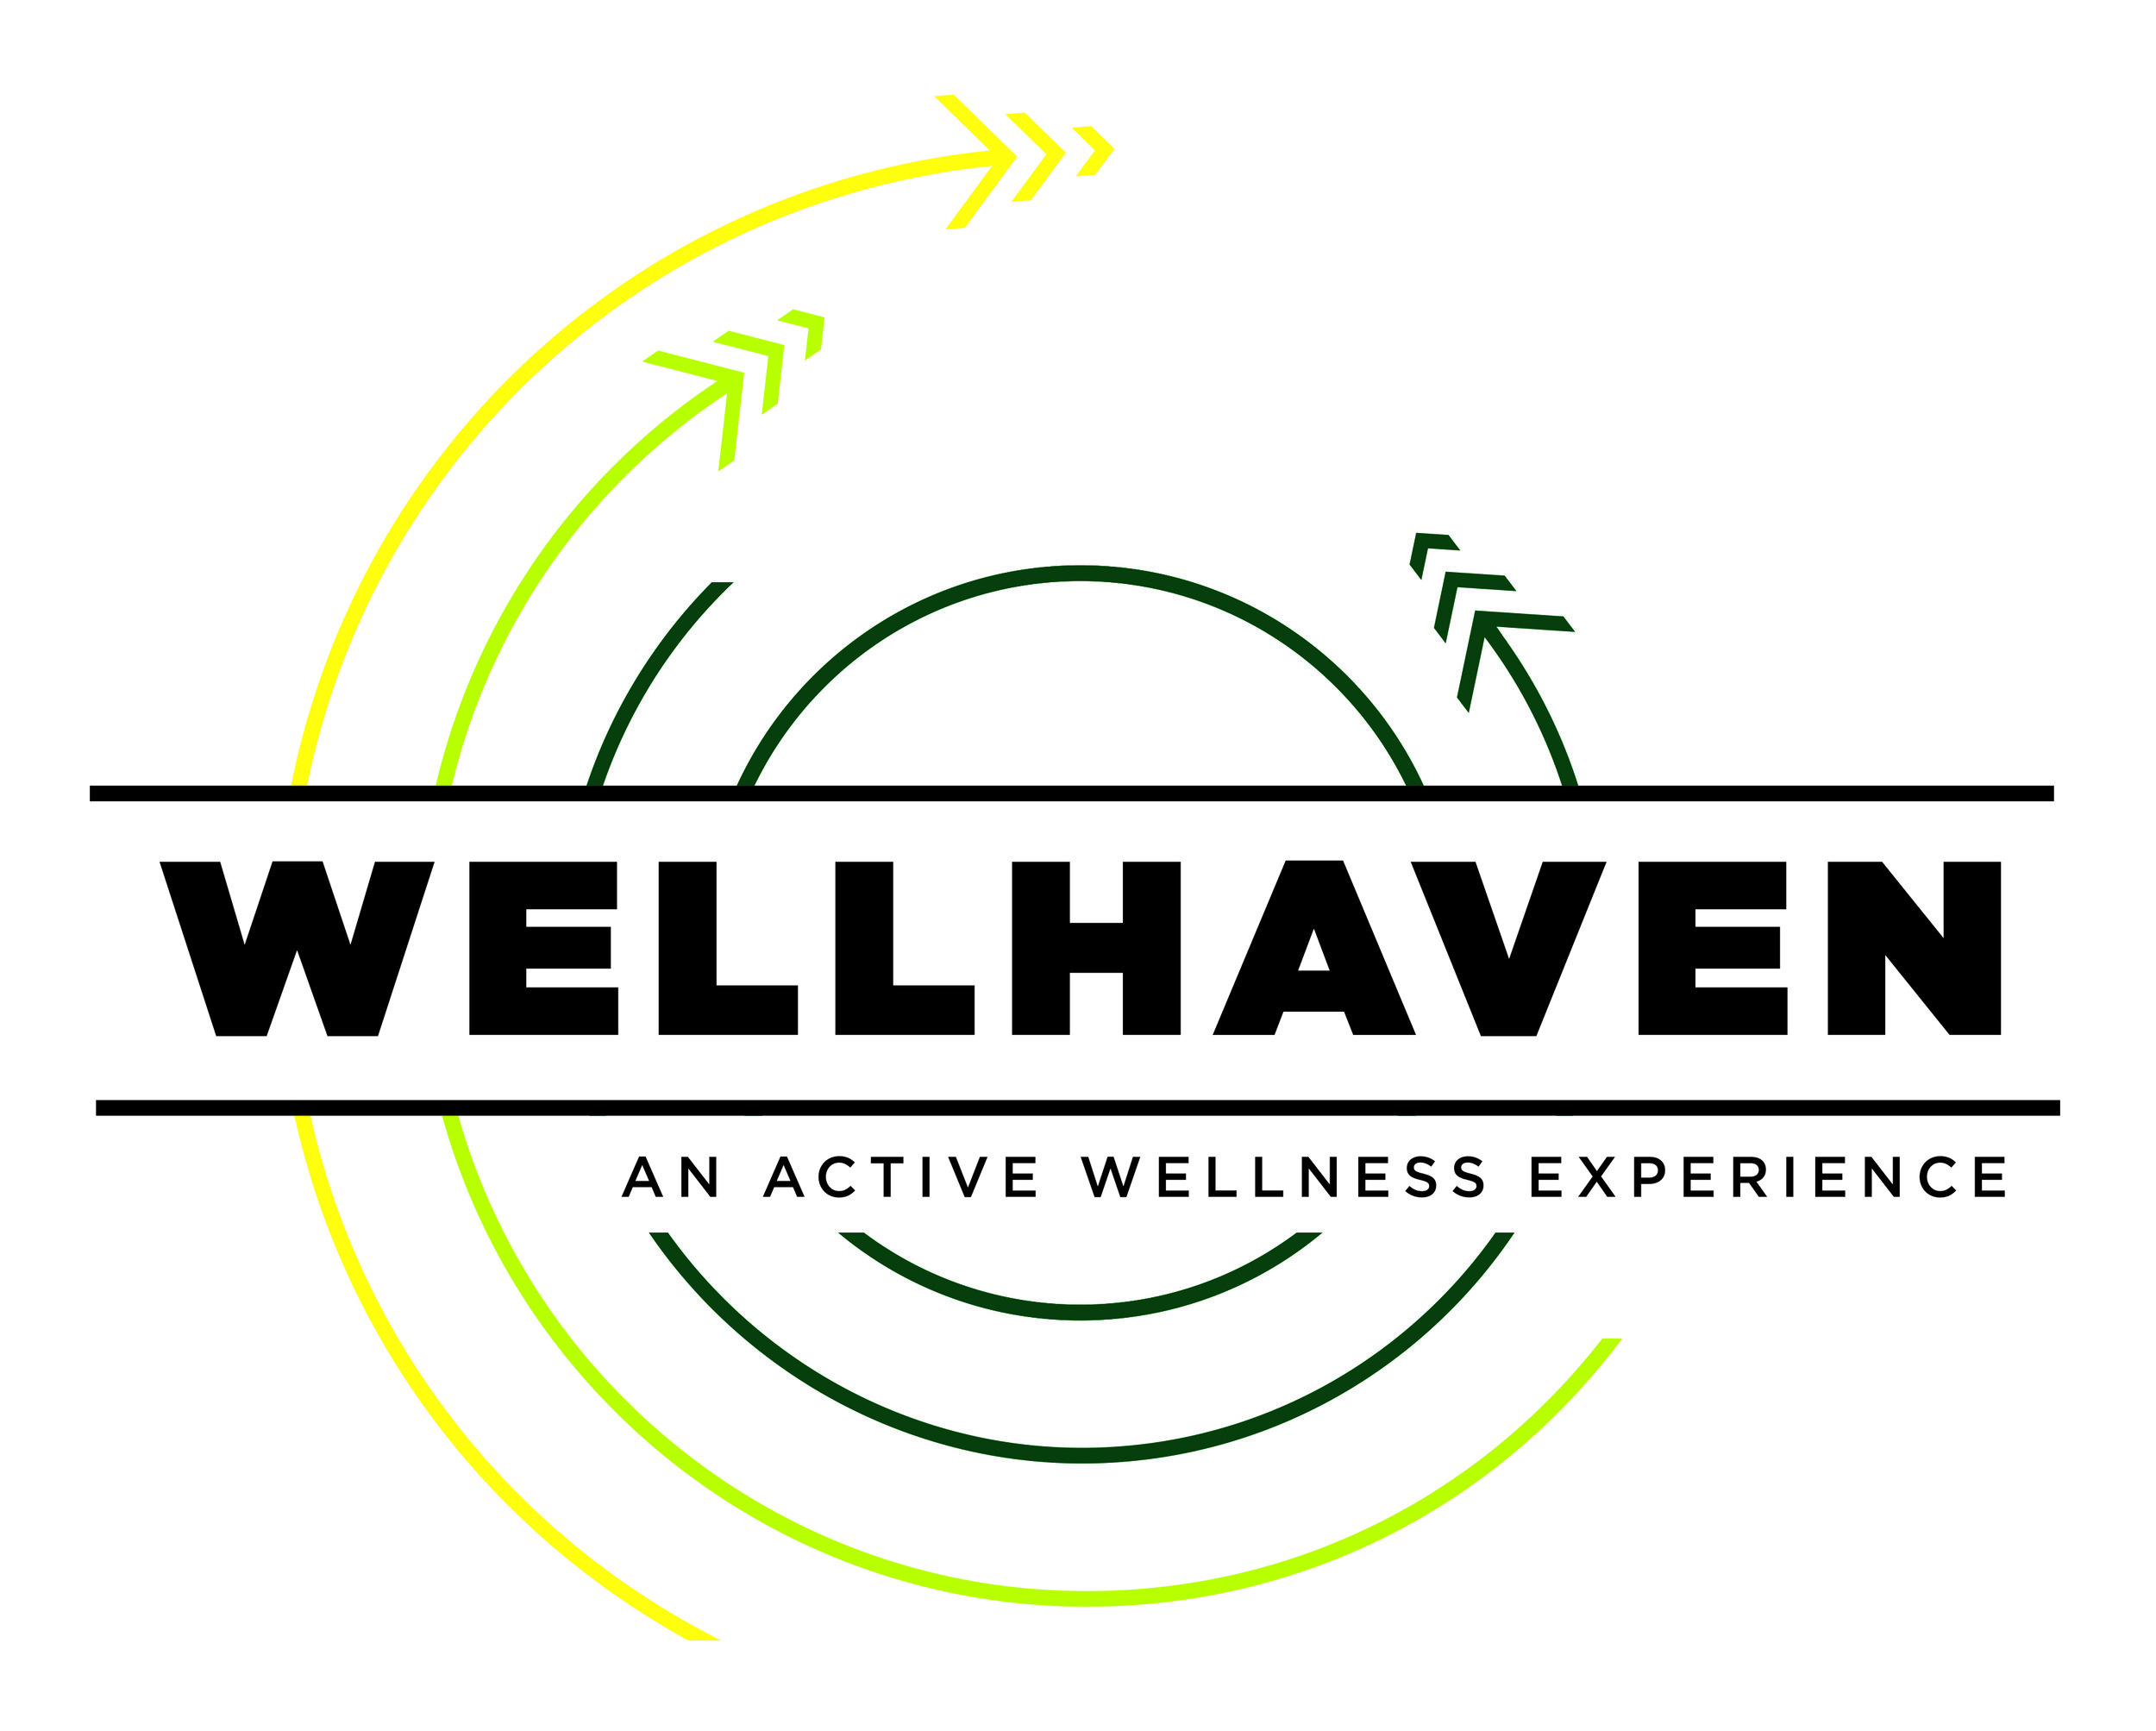 Wellhaven is an active wellness experience.